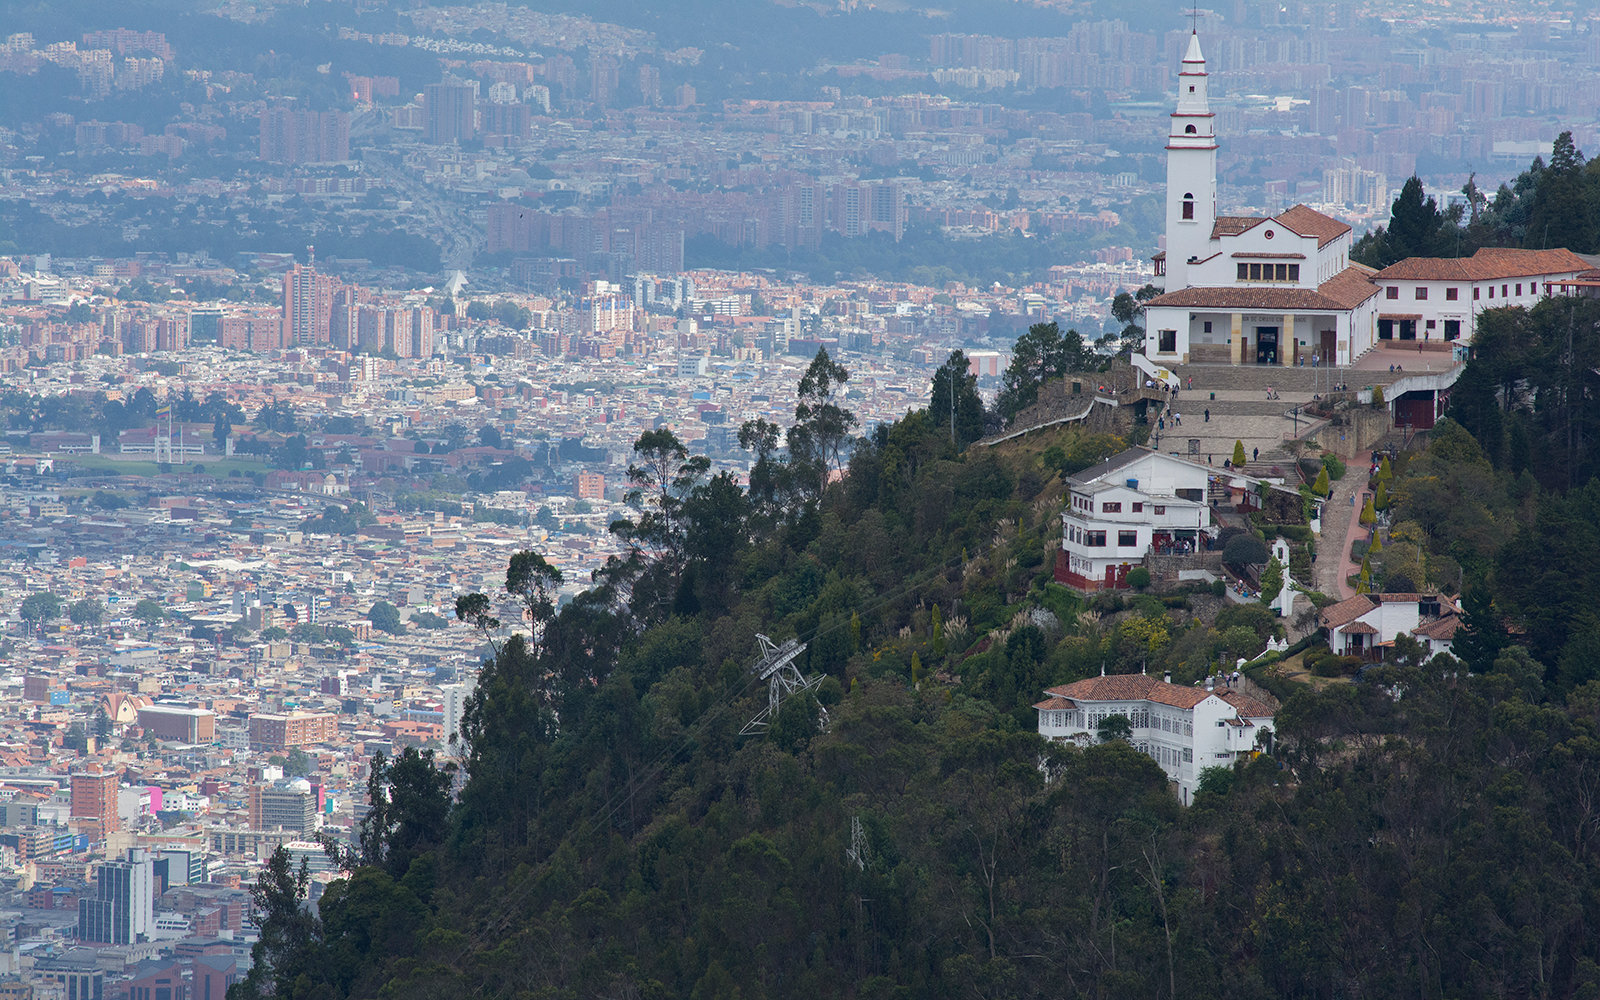 BOGOTA, COLOMBIA - FEBRUARY 23:  View of the church on the Monserrate mountain (10,341 ft) and the capital city from the 'Santuario de la Virgen de Guadalupe' on February 23, 2016 in Bogota, Colombia. The sanctuary  sits on the Guadalupe hill overlooking